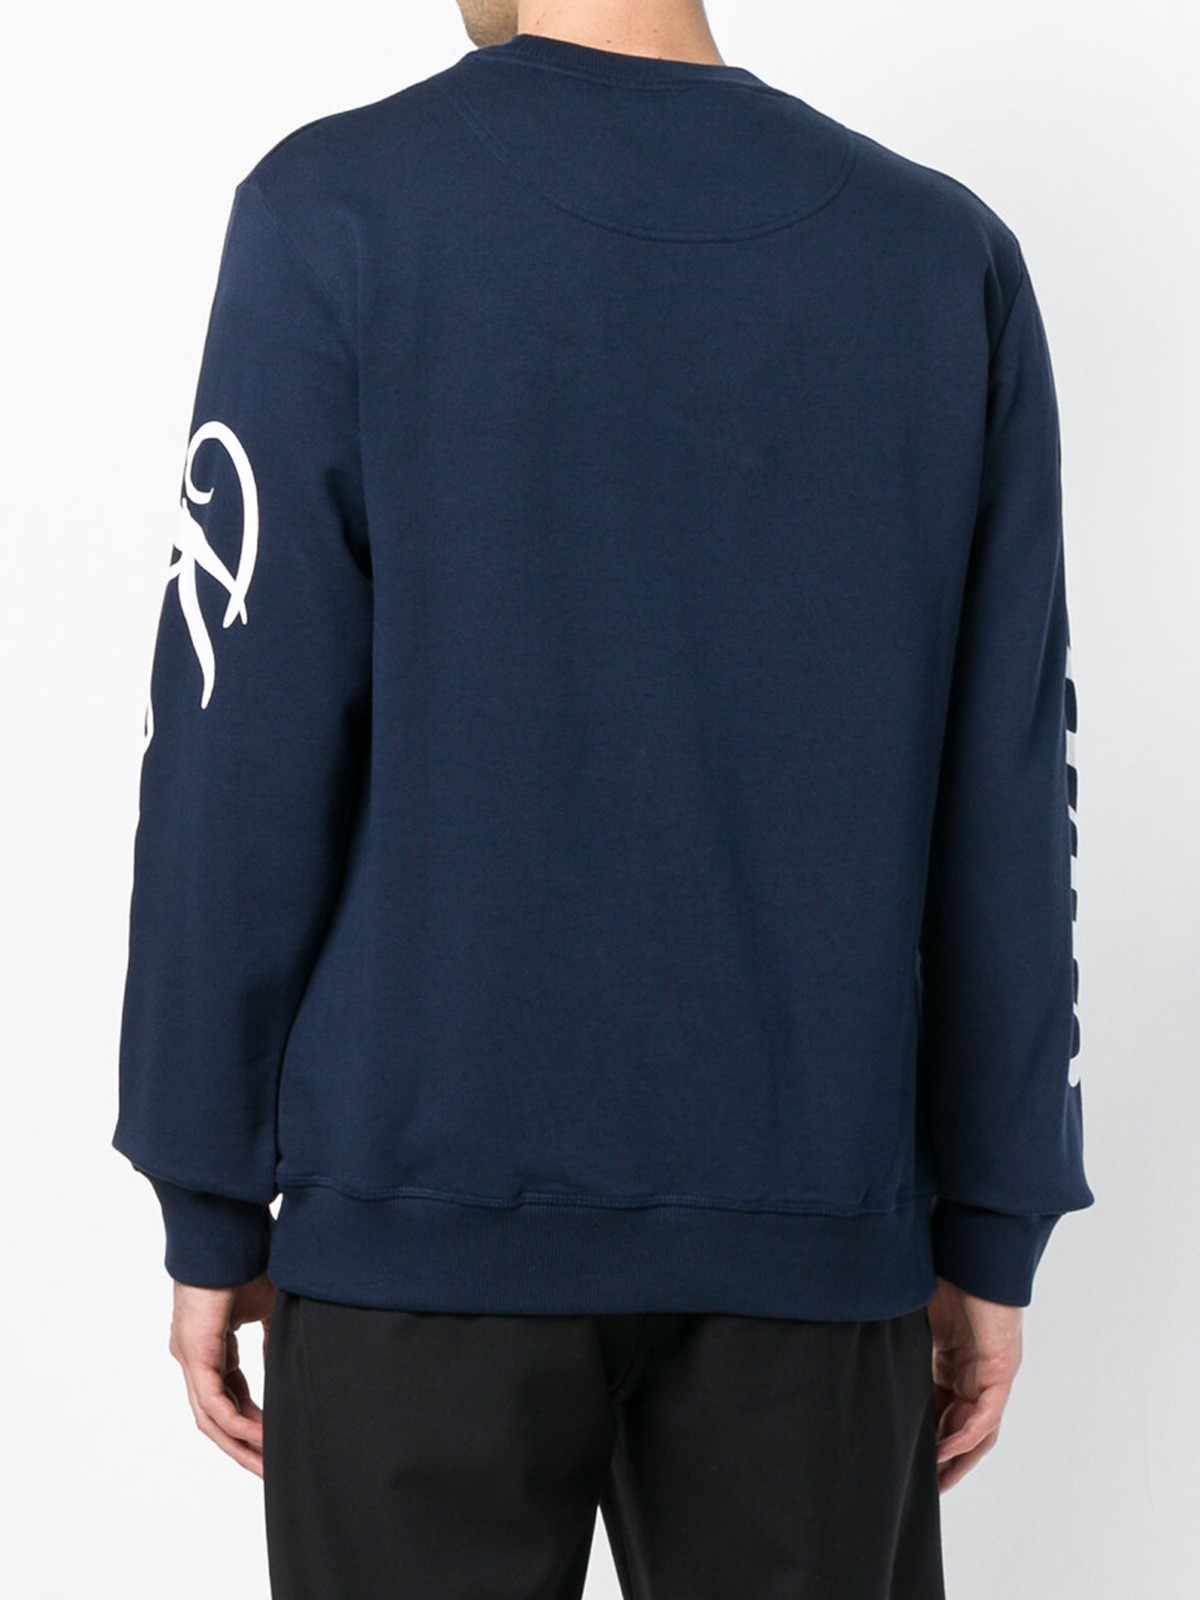 Kenzo Jumping Tiger Sweatshirt Available On Montiboutique